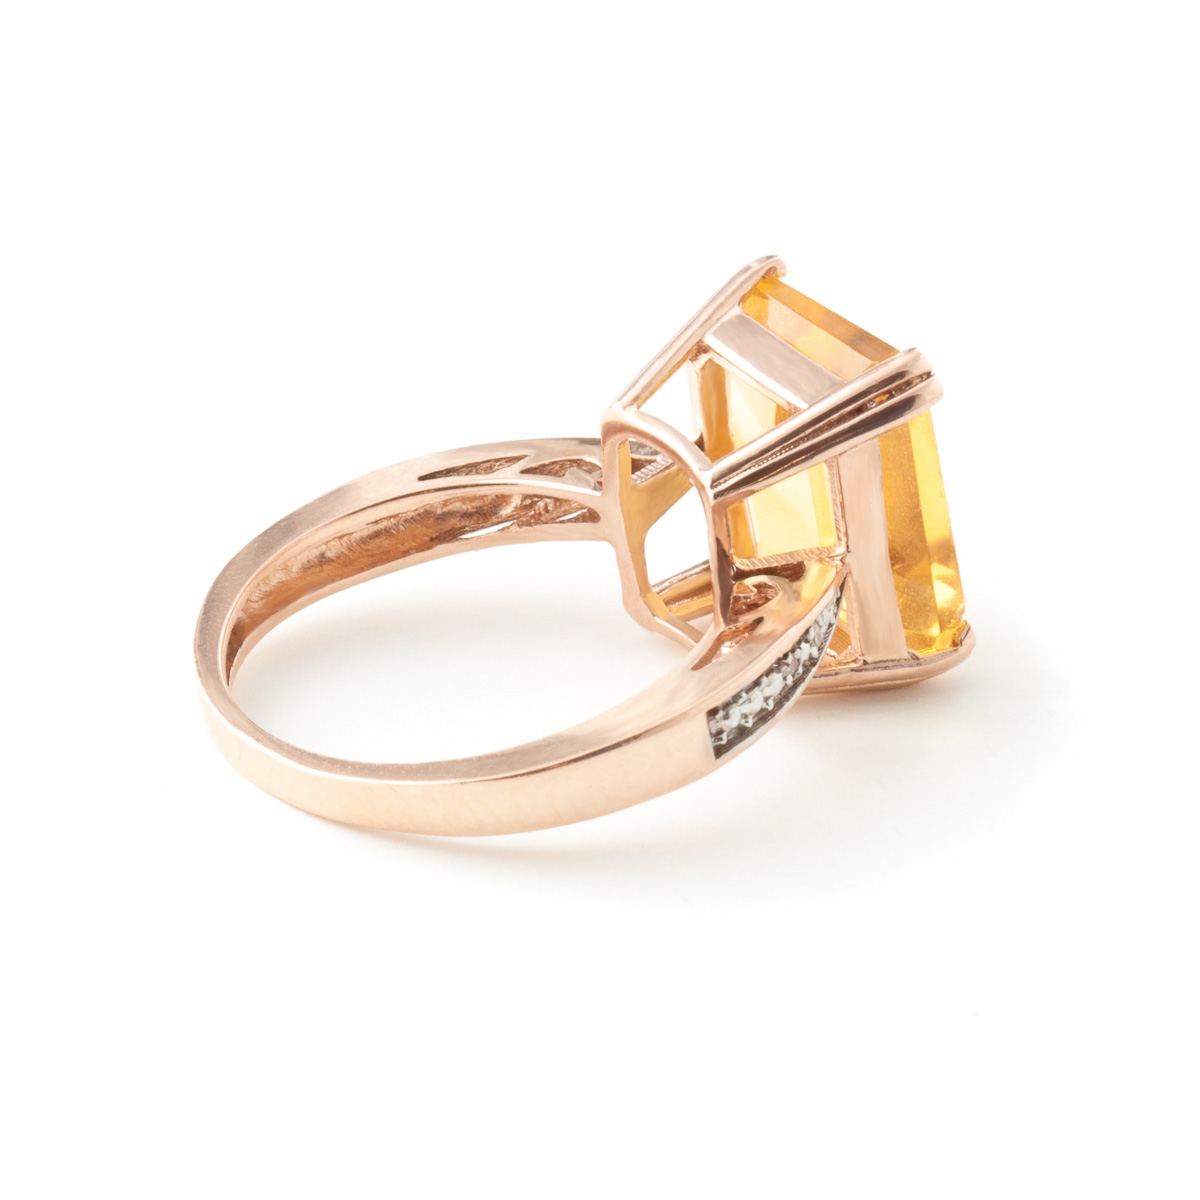 Citrine and Diamond Ring 5.6ct in 9ct Rose Gold